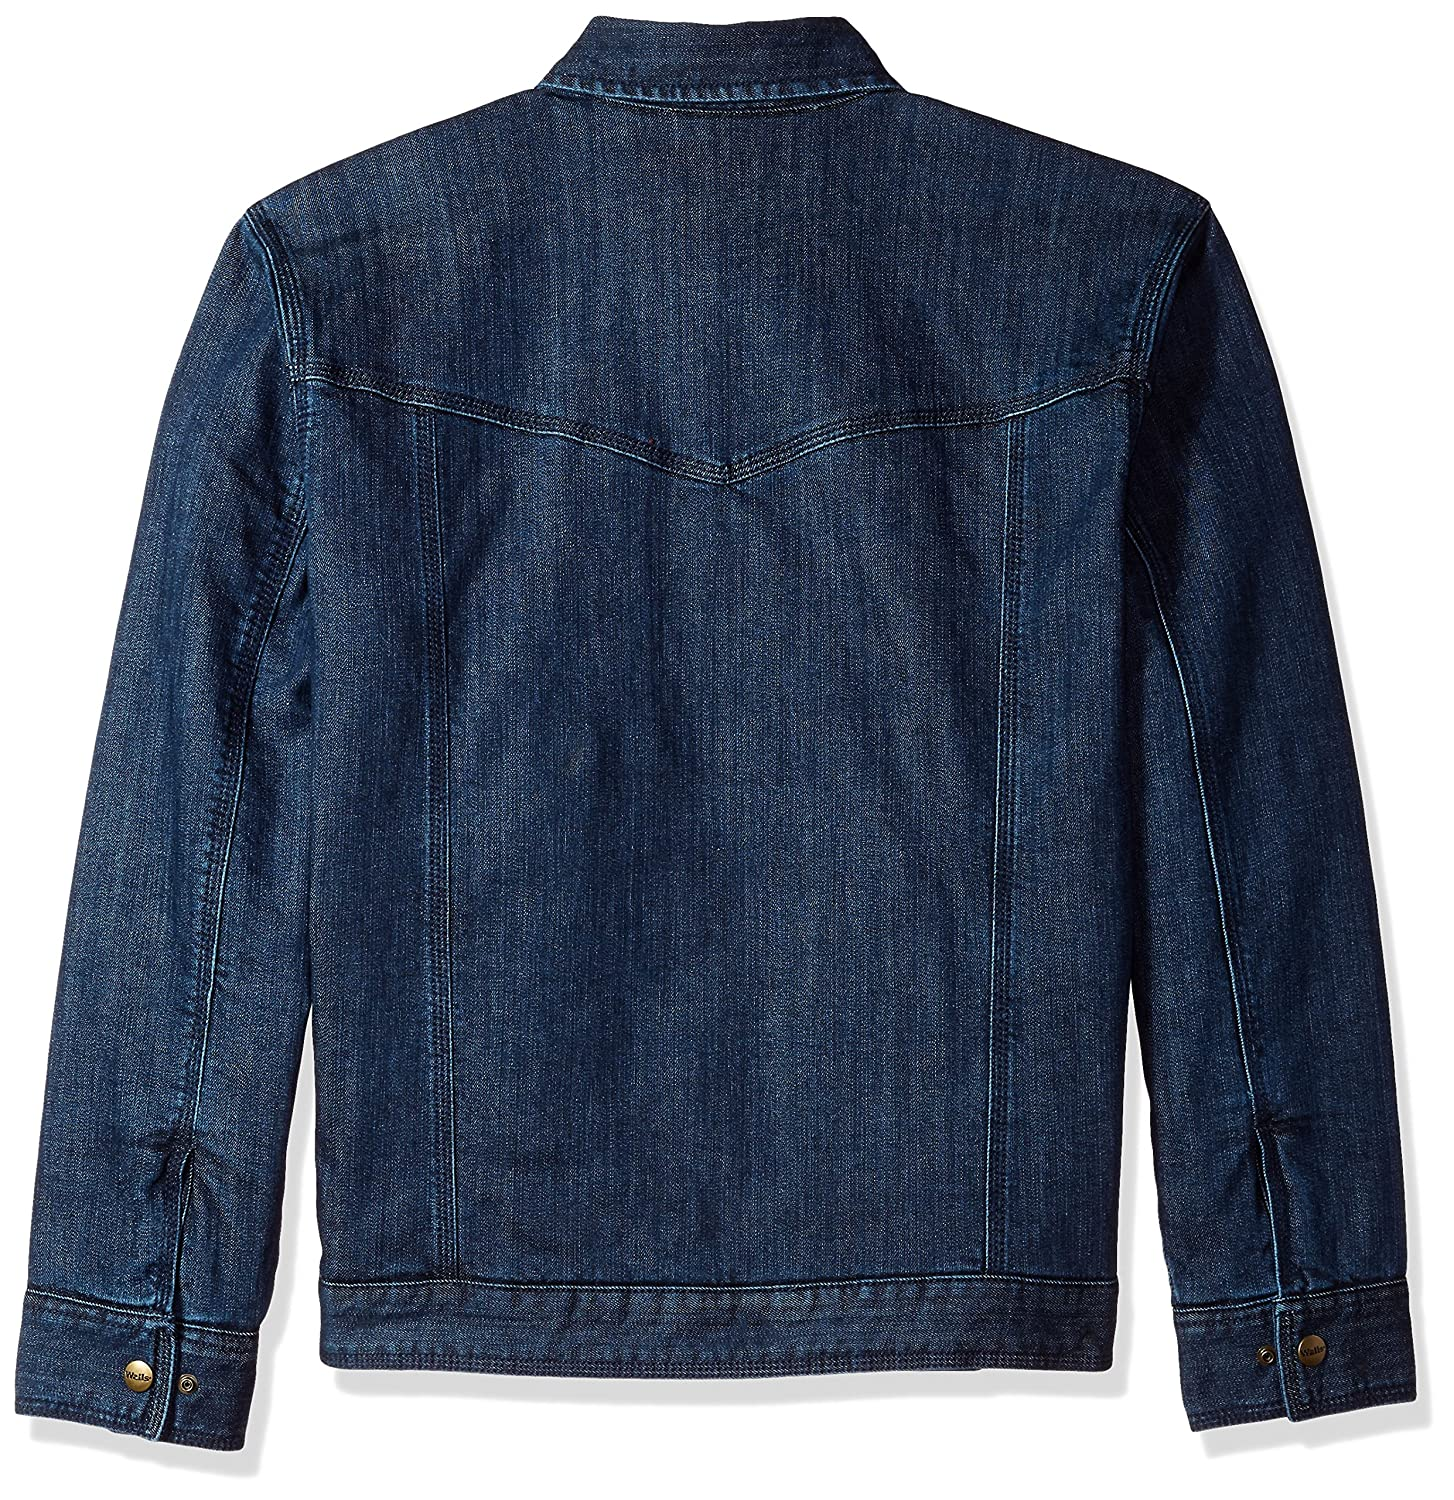 Walls Mens Vintage Denim Jacket Denim Jacket